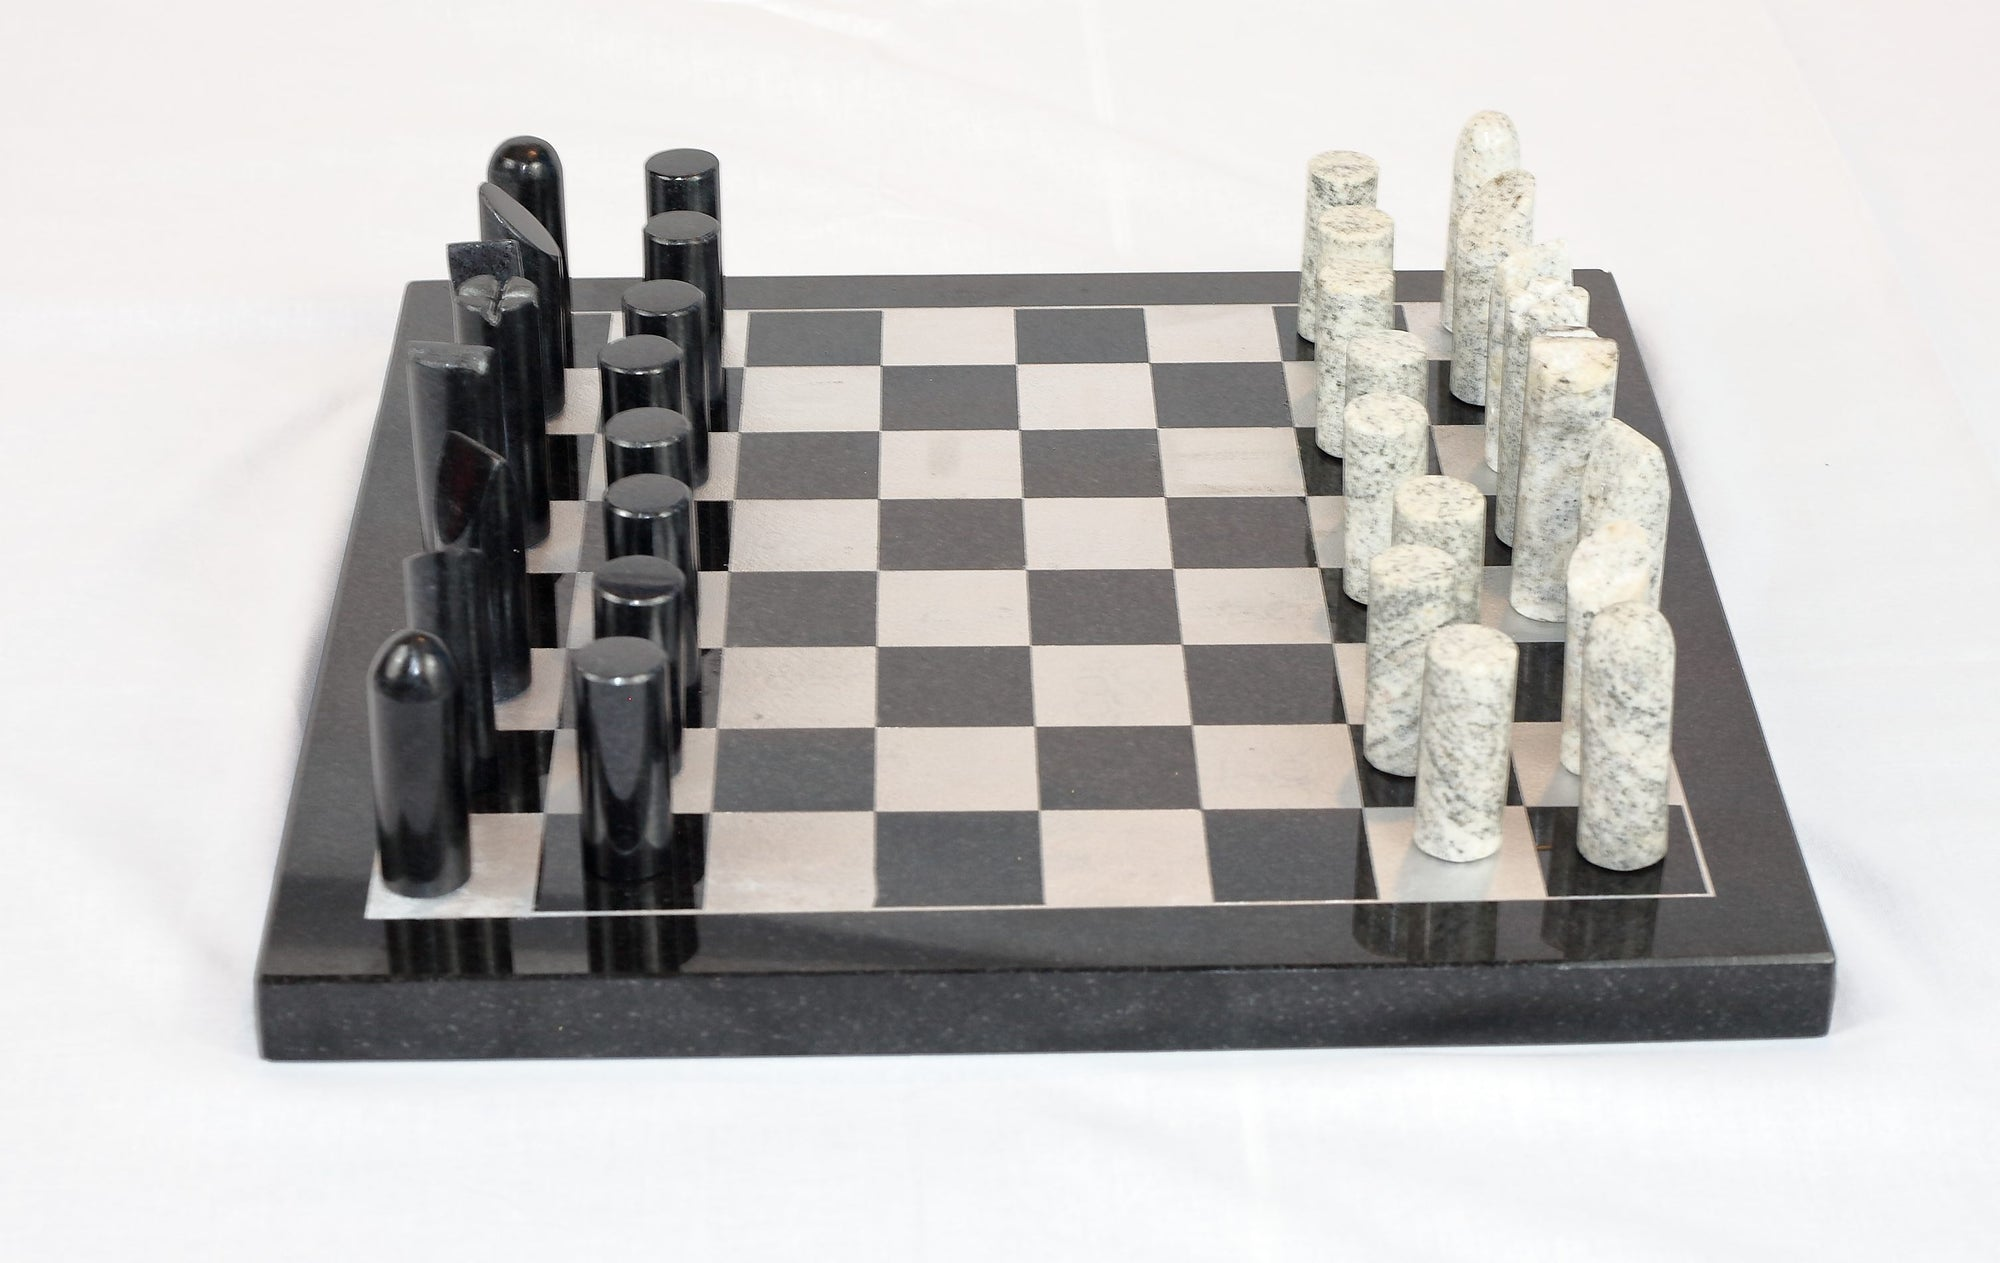 Granite simpleton chess set